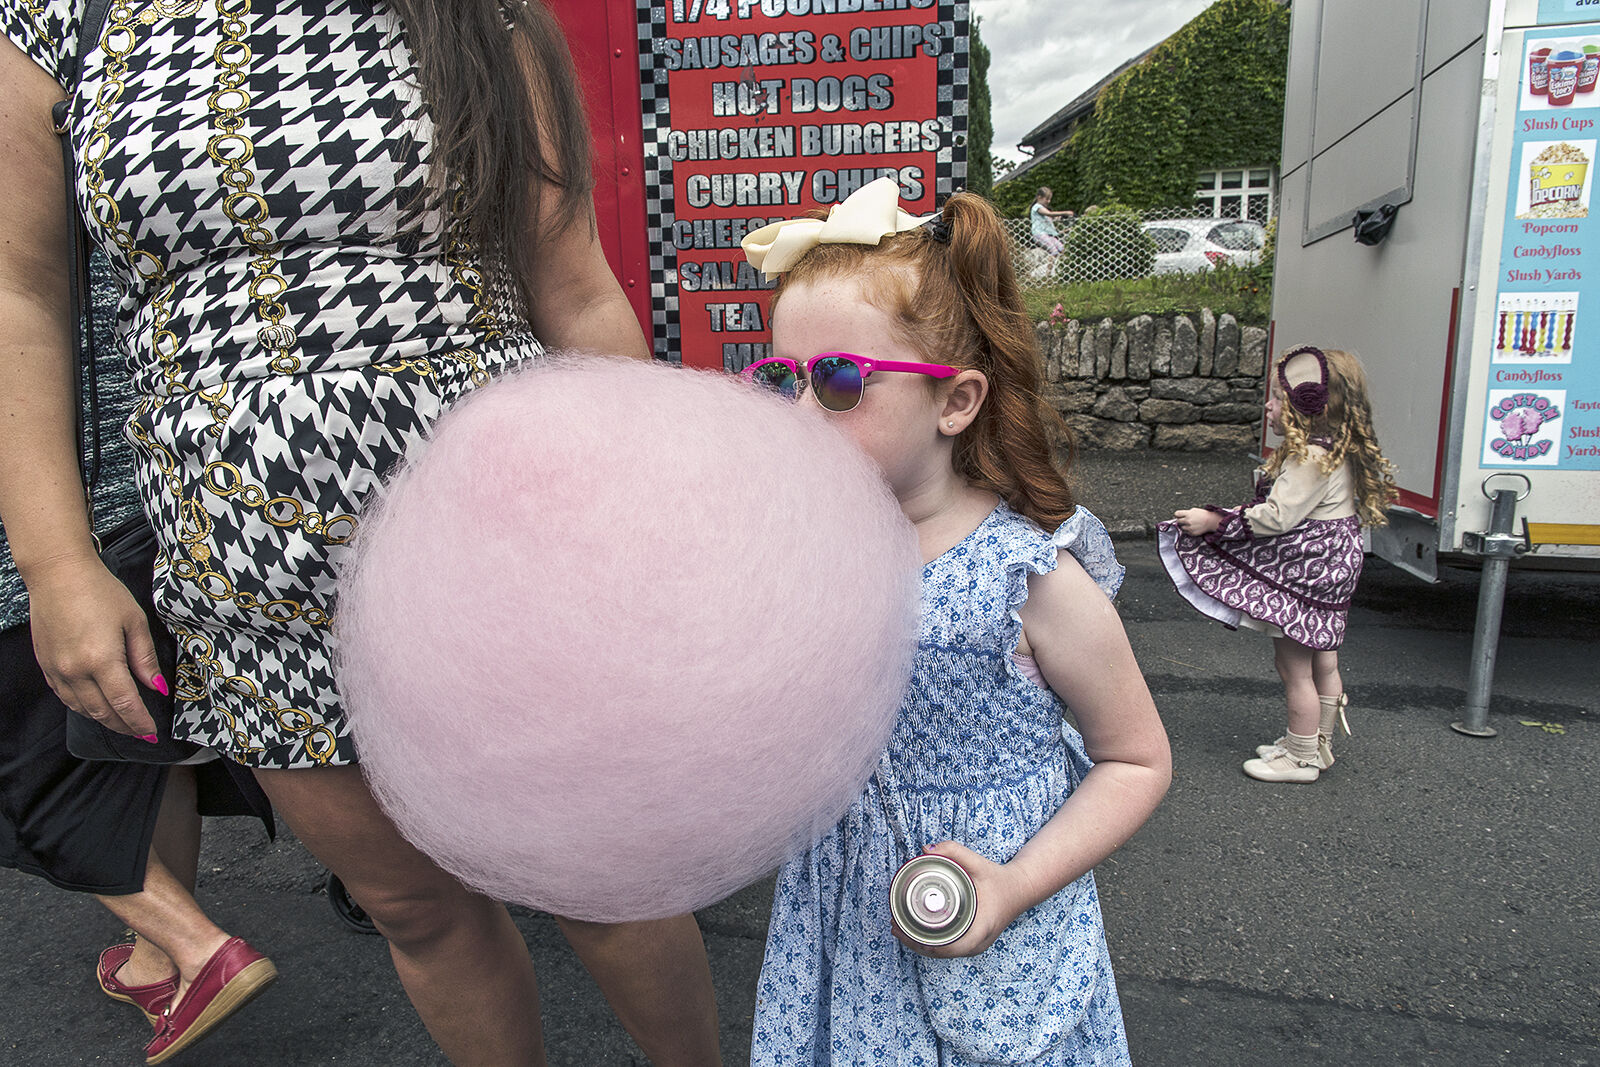 Pink Cotton Candy, Borris Fair, Carlow, Ireland 2019